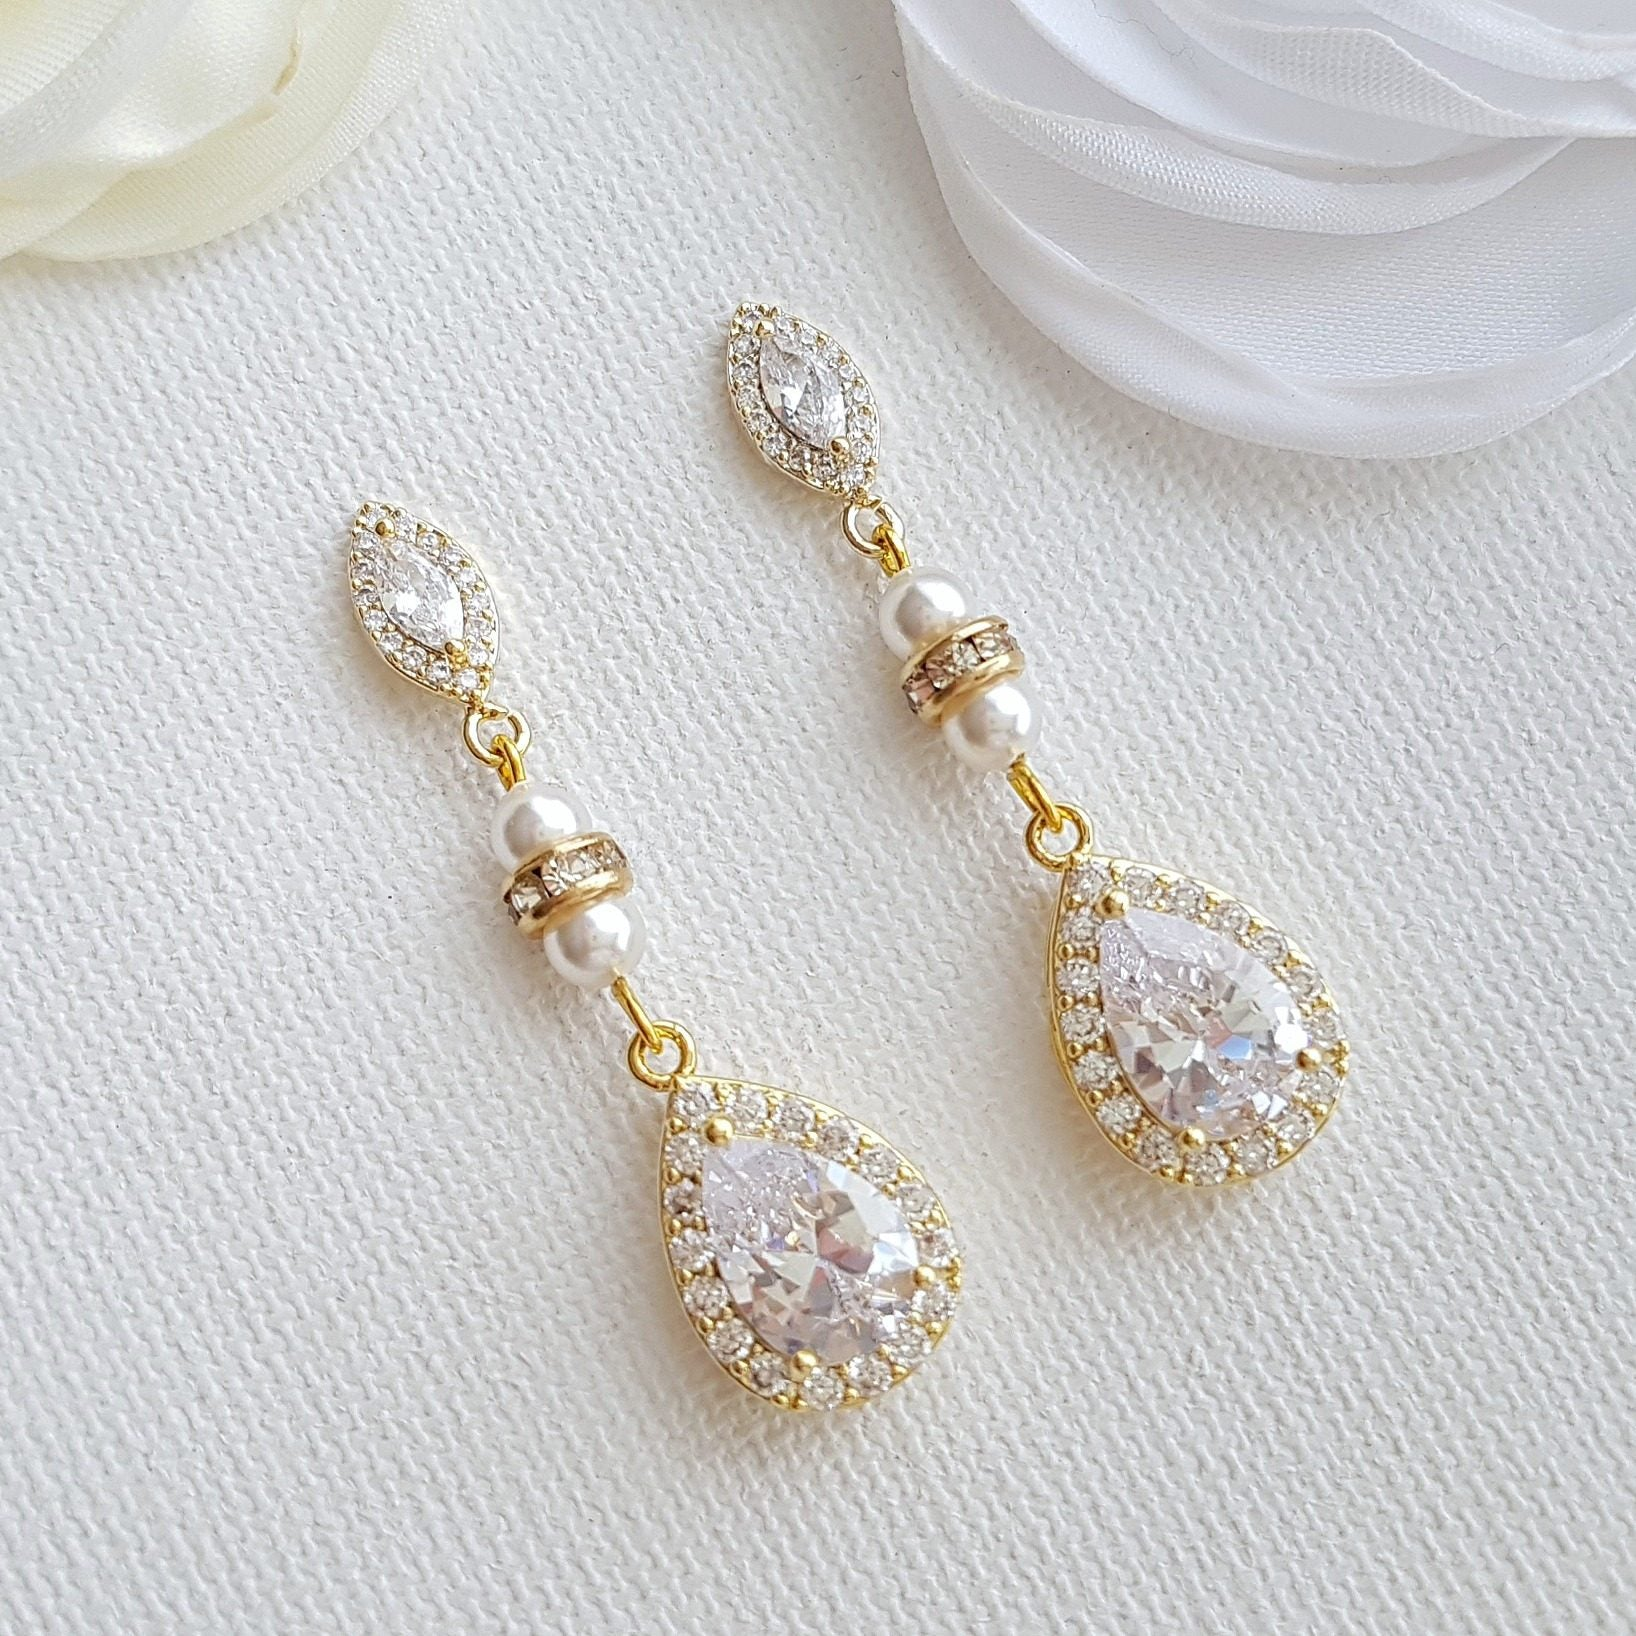 Wedding Earrings Gold Crystal Bridal Earrings Bridesmaid Earrings Drop Rose Gold Wedding Earrings Swarovski Pearls Wedding Jewelry, Ella